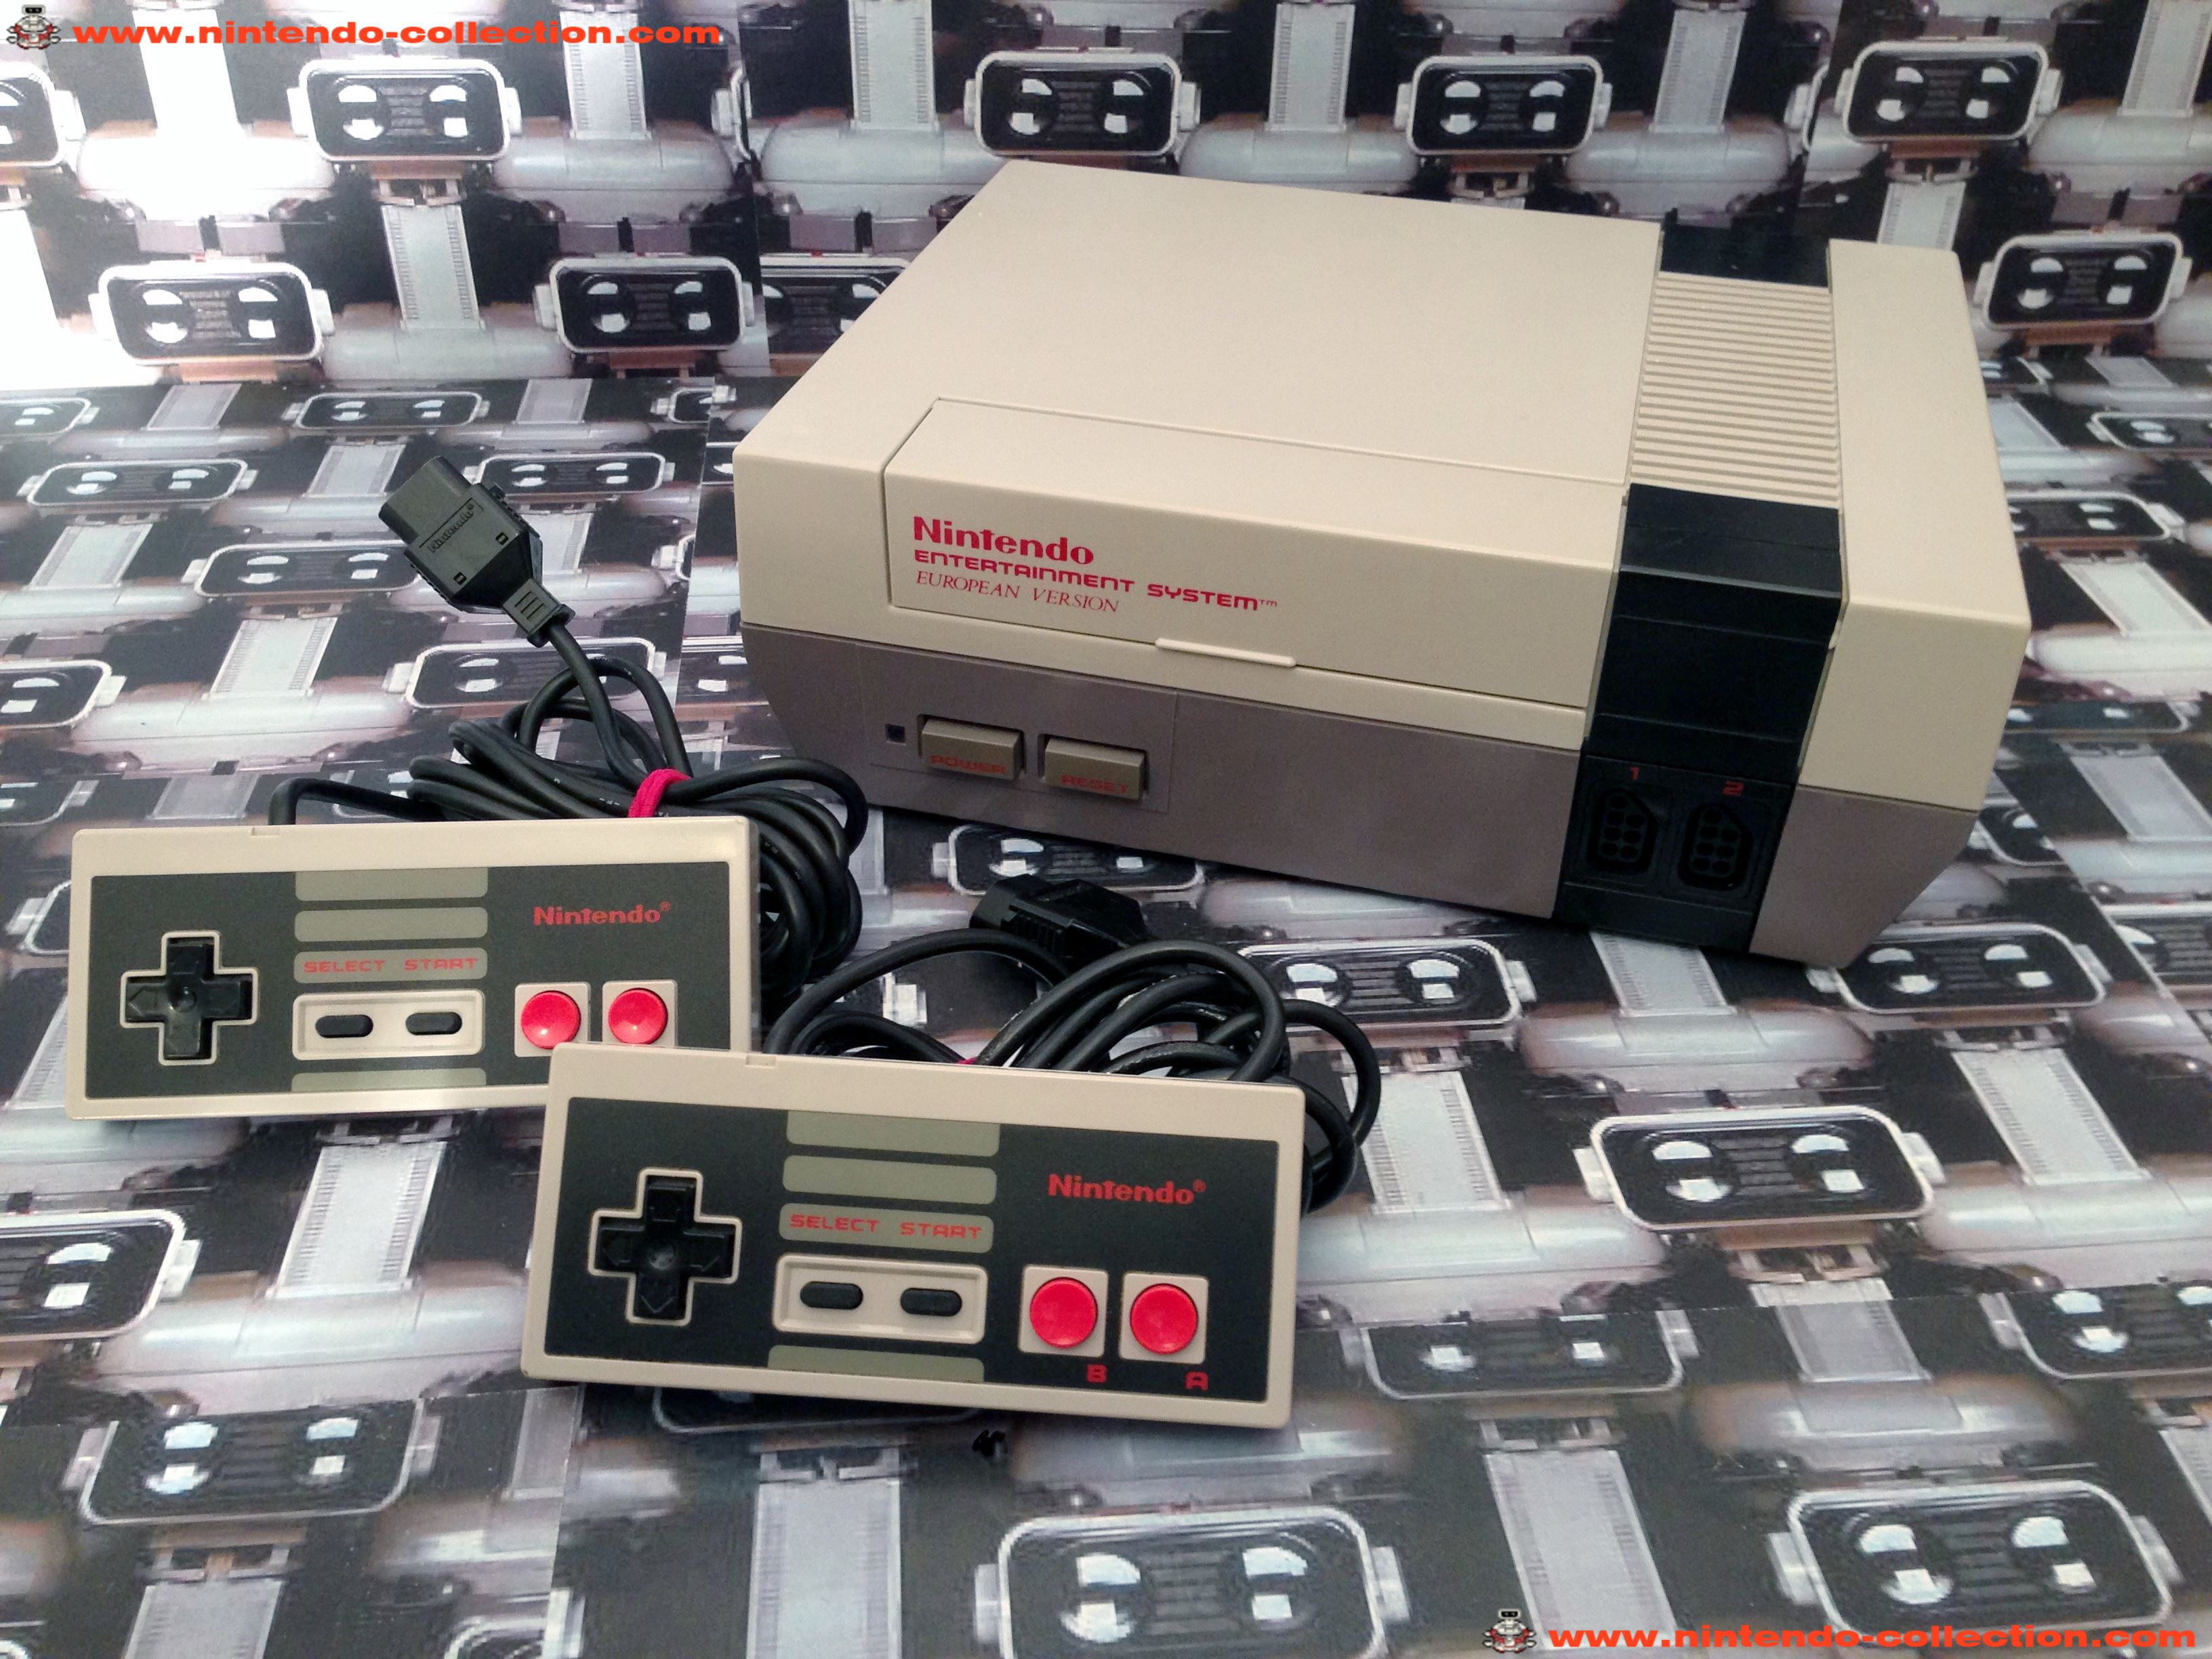 www.nintendo-collection.com - NES European Version - 01